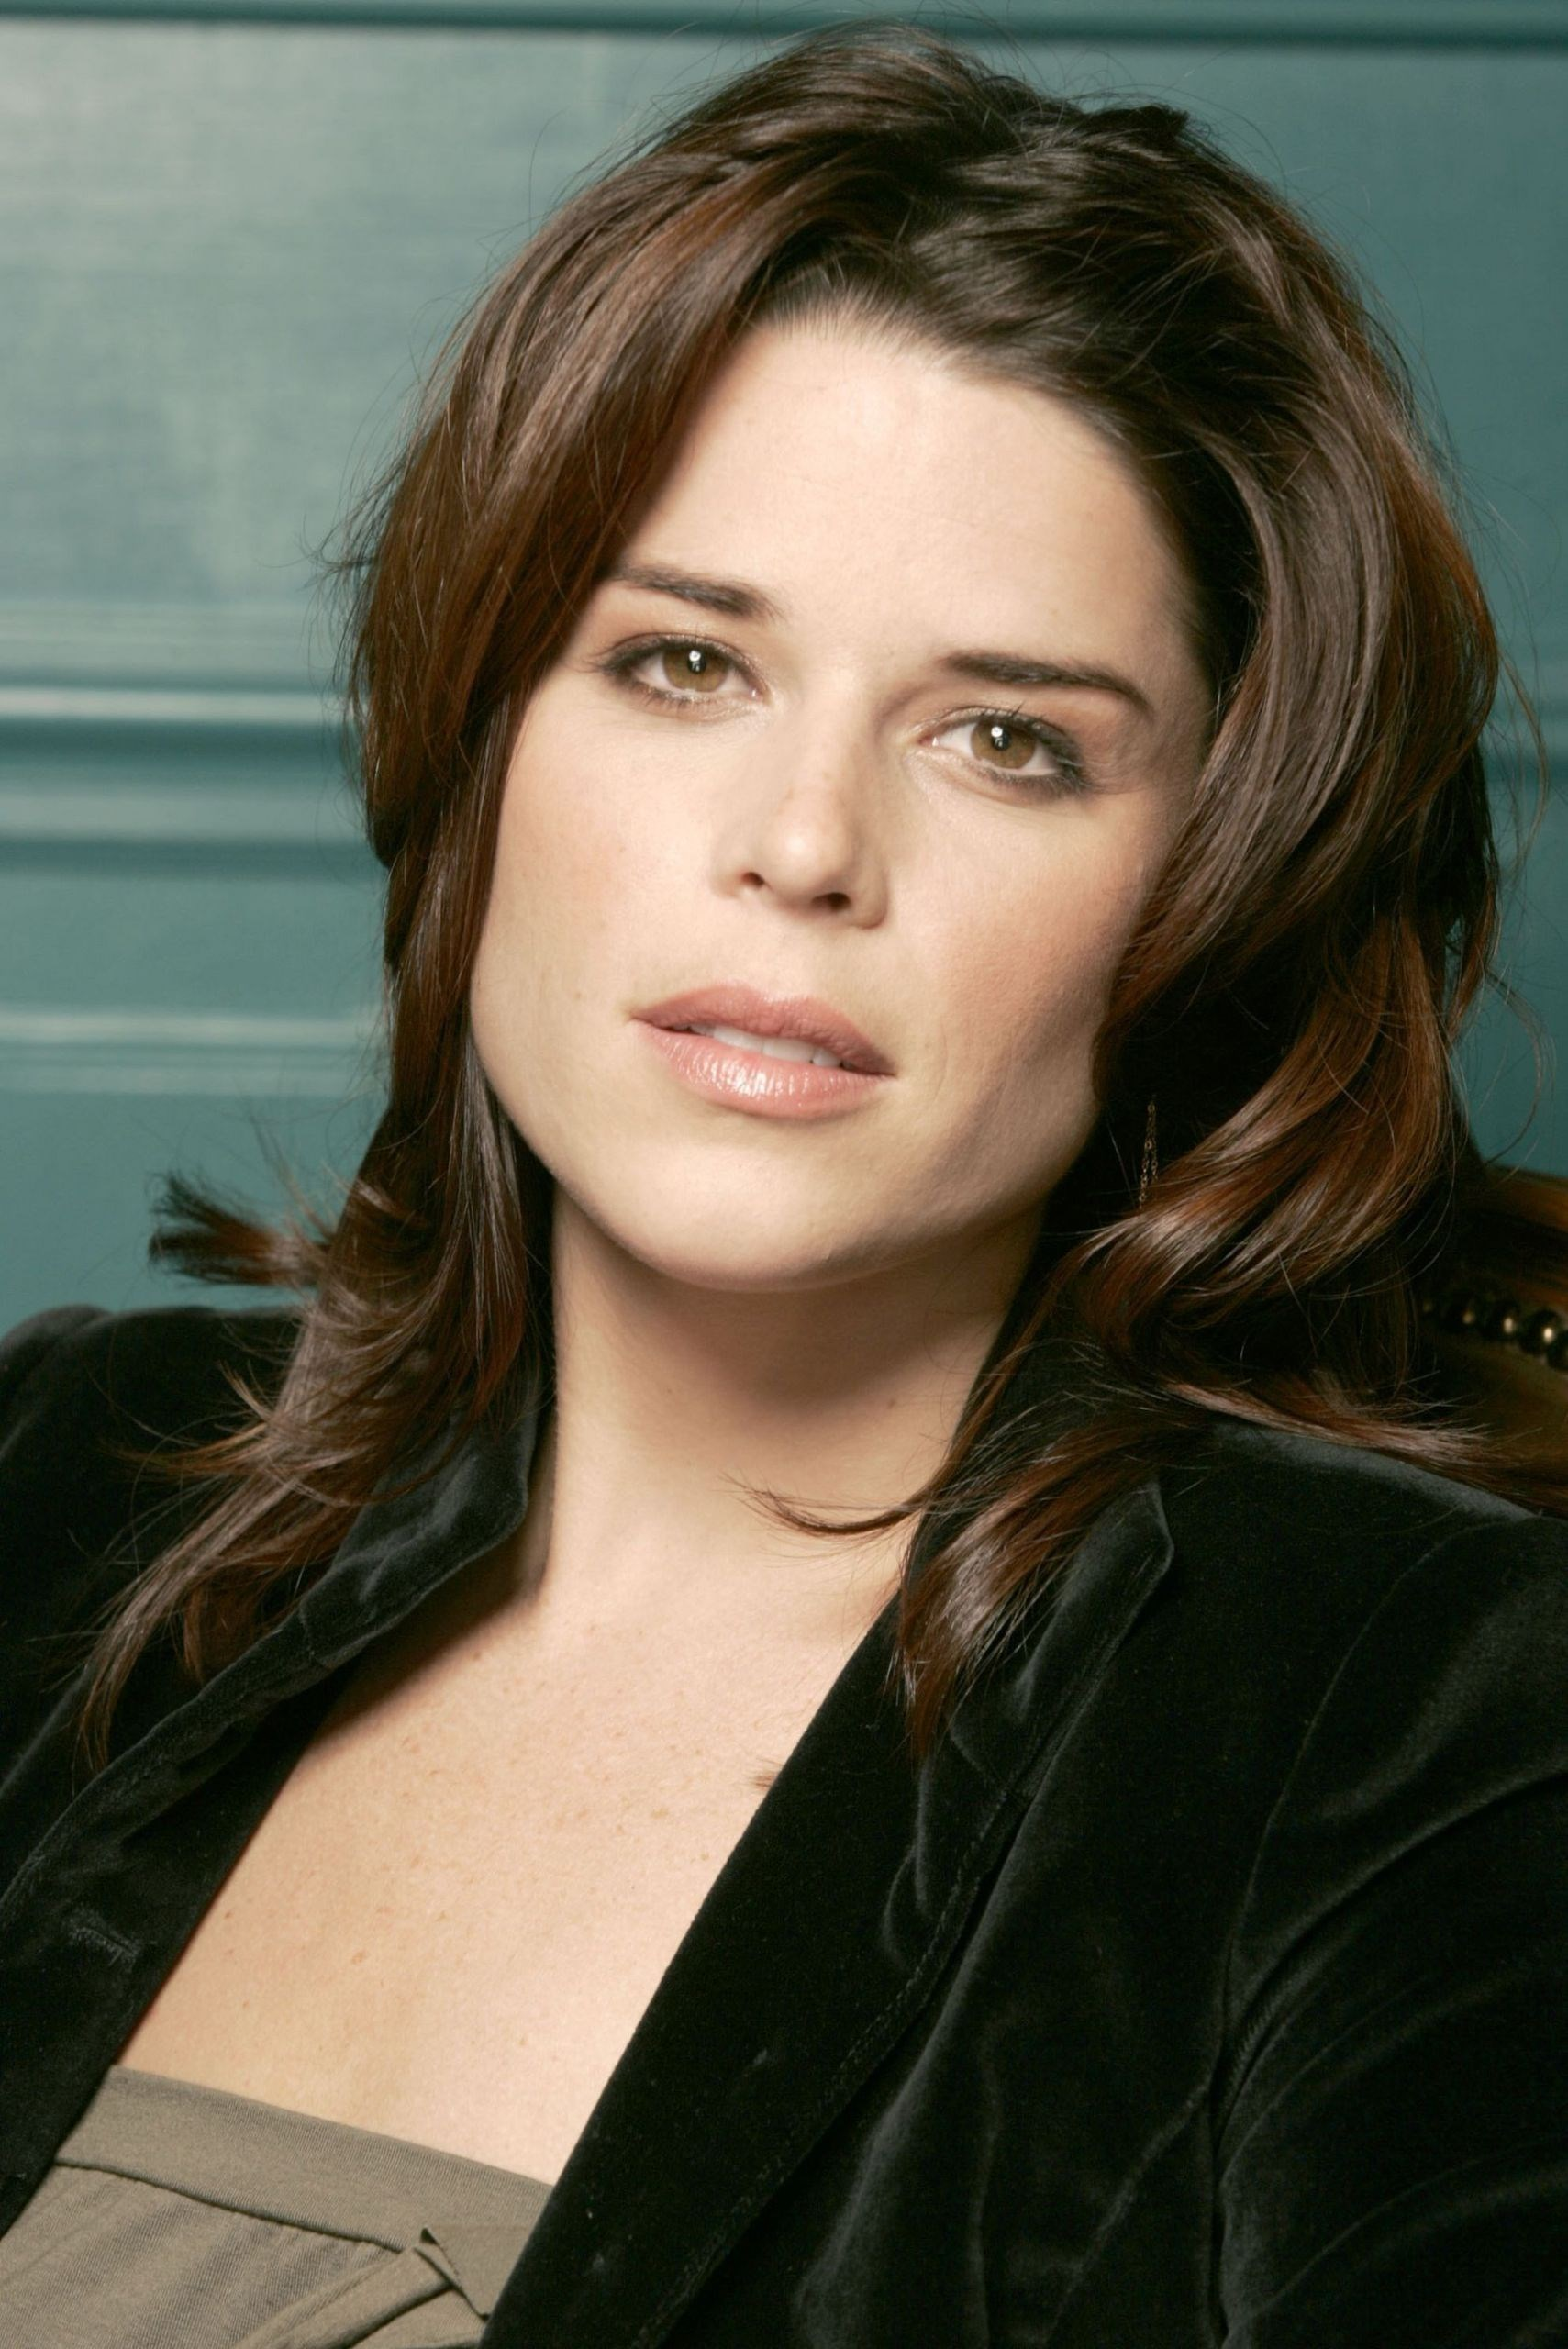 Fall Wallpaper 2017 Neve Campbell Known People Famous People News And